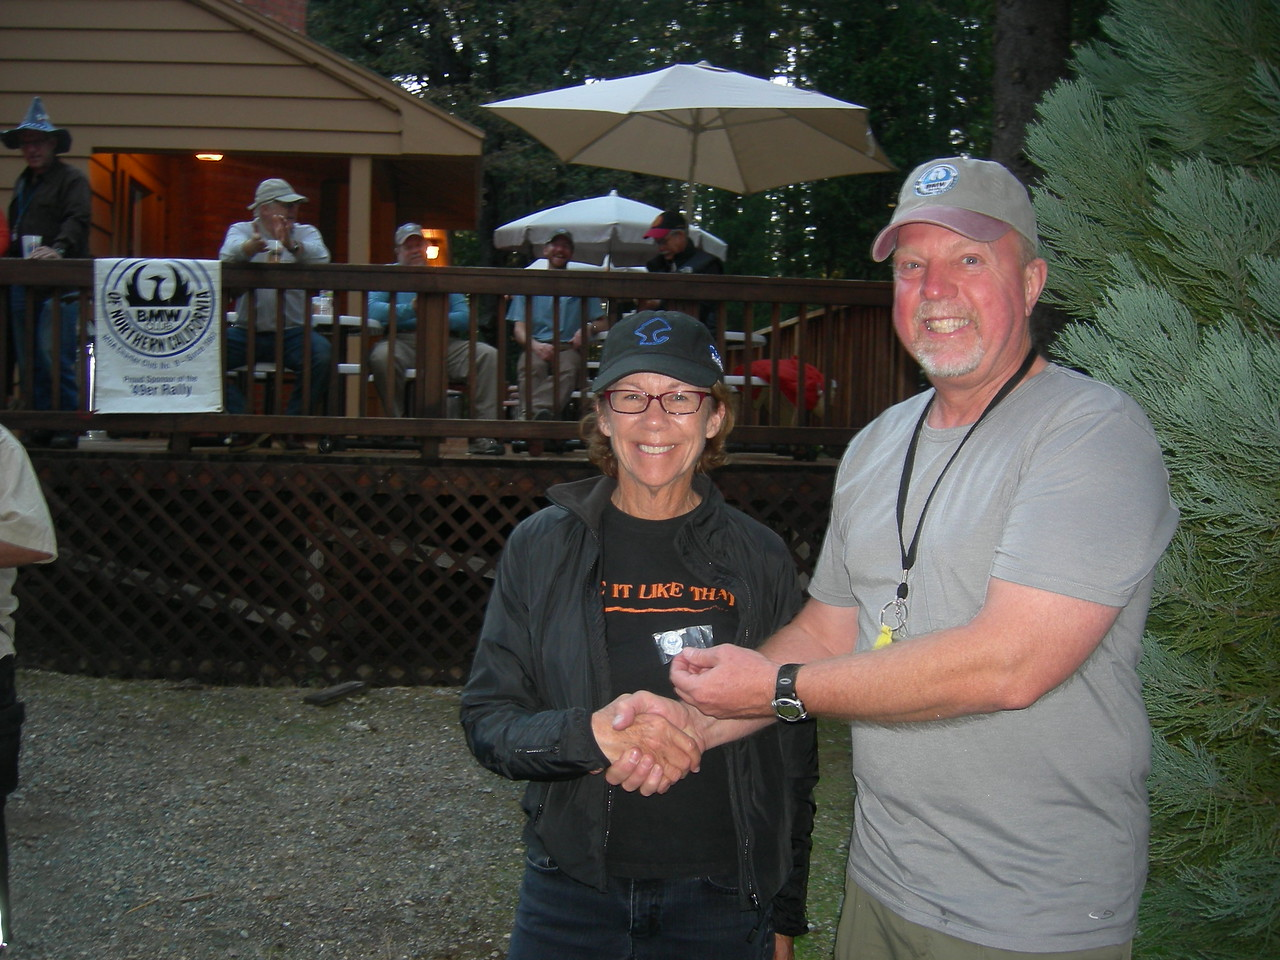 The lovely Pat Potter receives her 25-year membership pin from VP Peter Oxenbol.